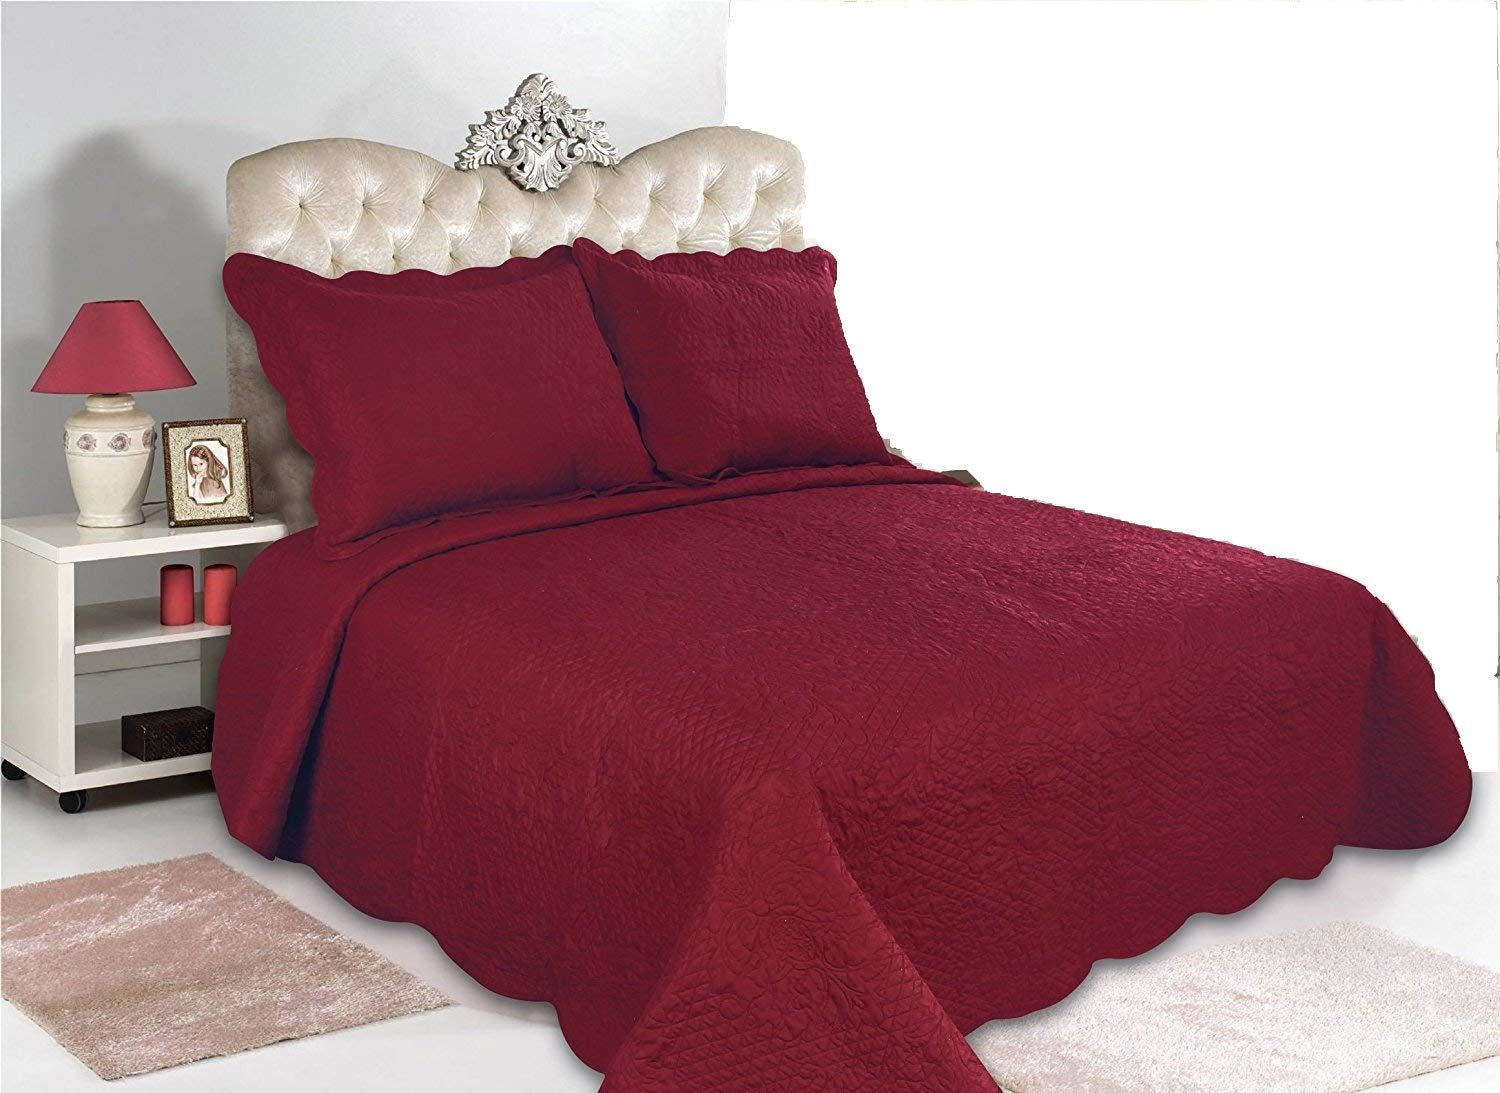 ALL FOR YOU 2pc Reversible Quilt Set, Bedspread, and Coverlet-Burgundy Color (Twin, Burgundy)